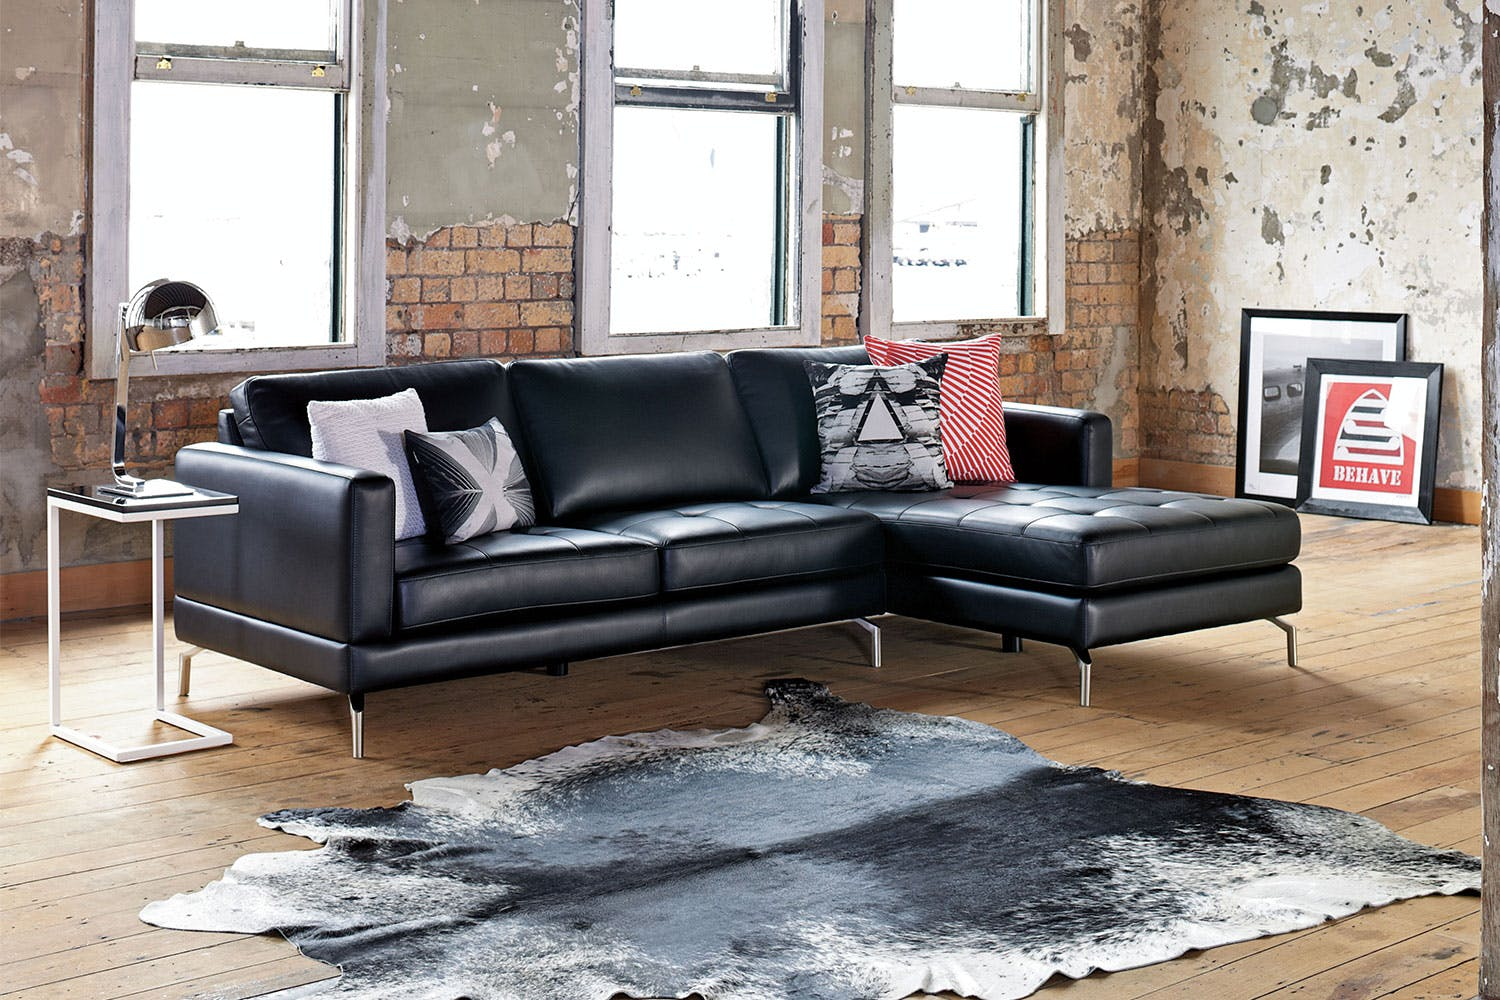 spencer  seater fabric sofa with chaise  harvey norman new zealand - spencer  seater fabric sofa with chaise